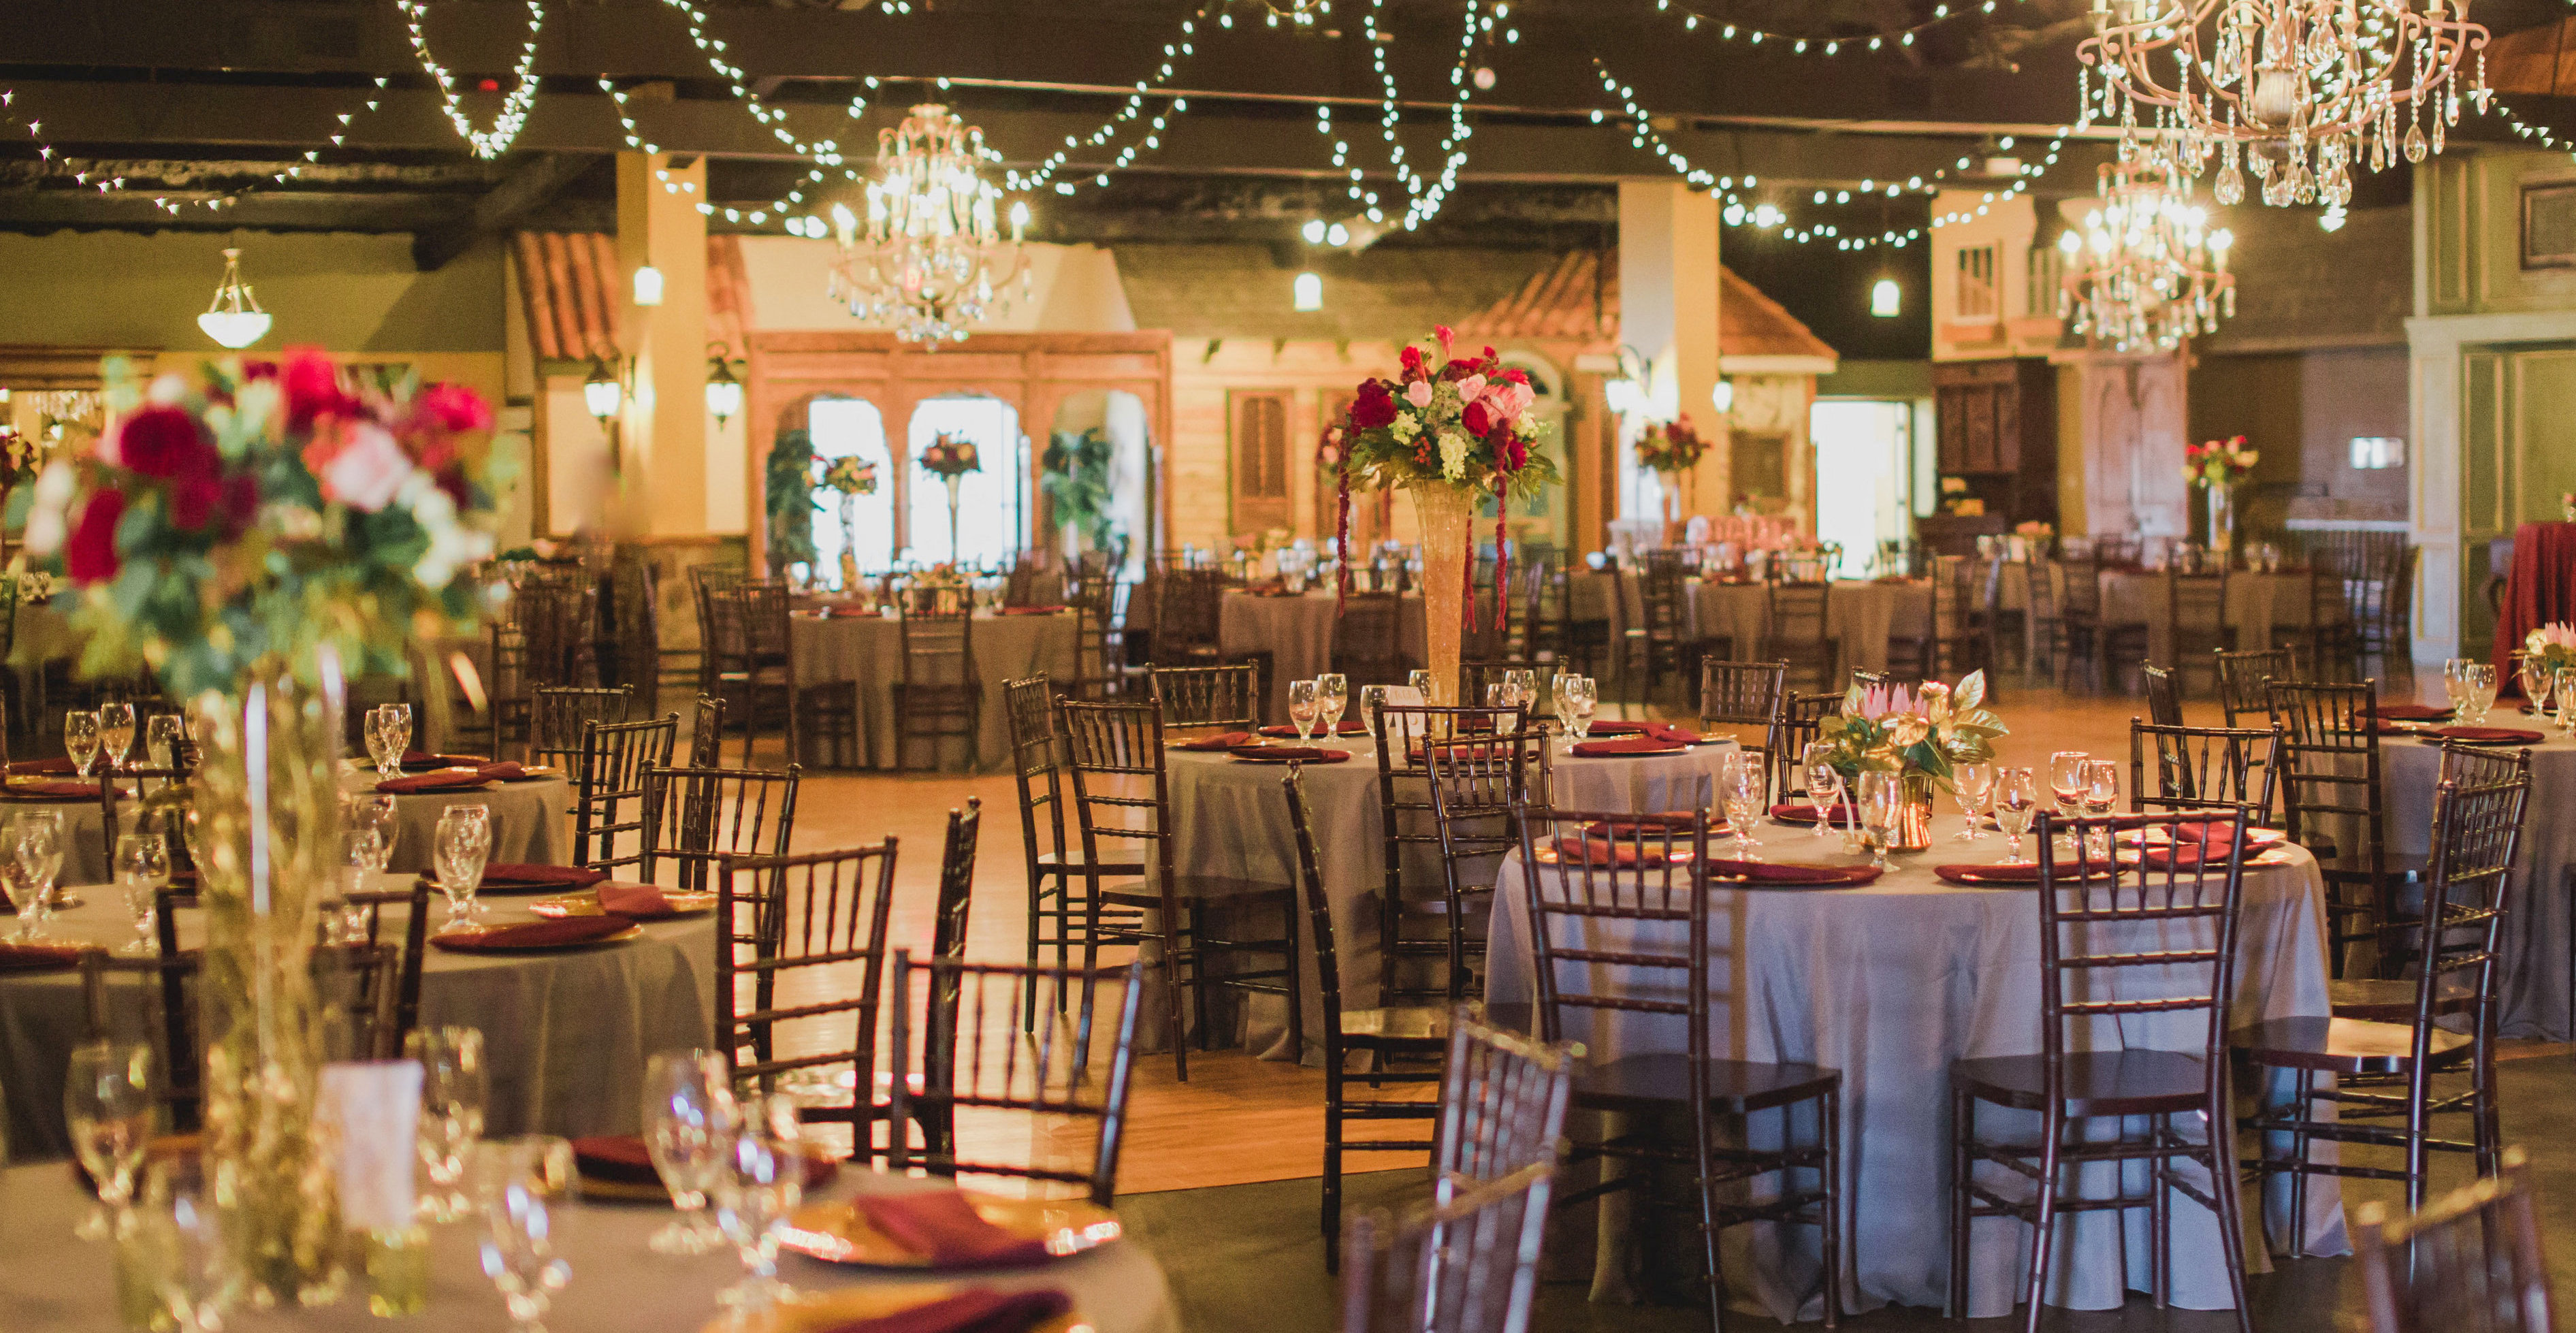 Floor And Decor Website >> The Palace Event Center - Brides of Oklahoma